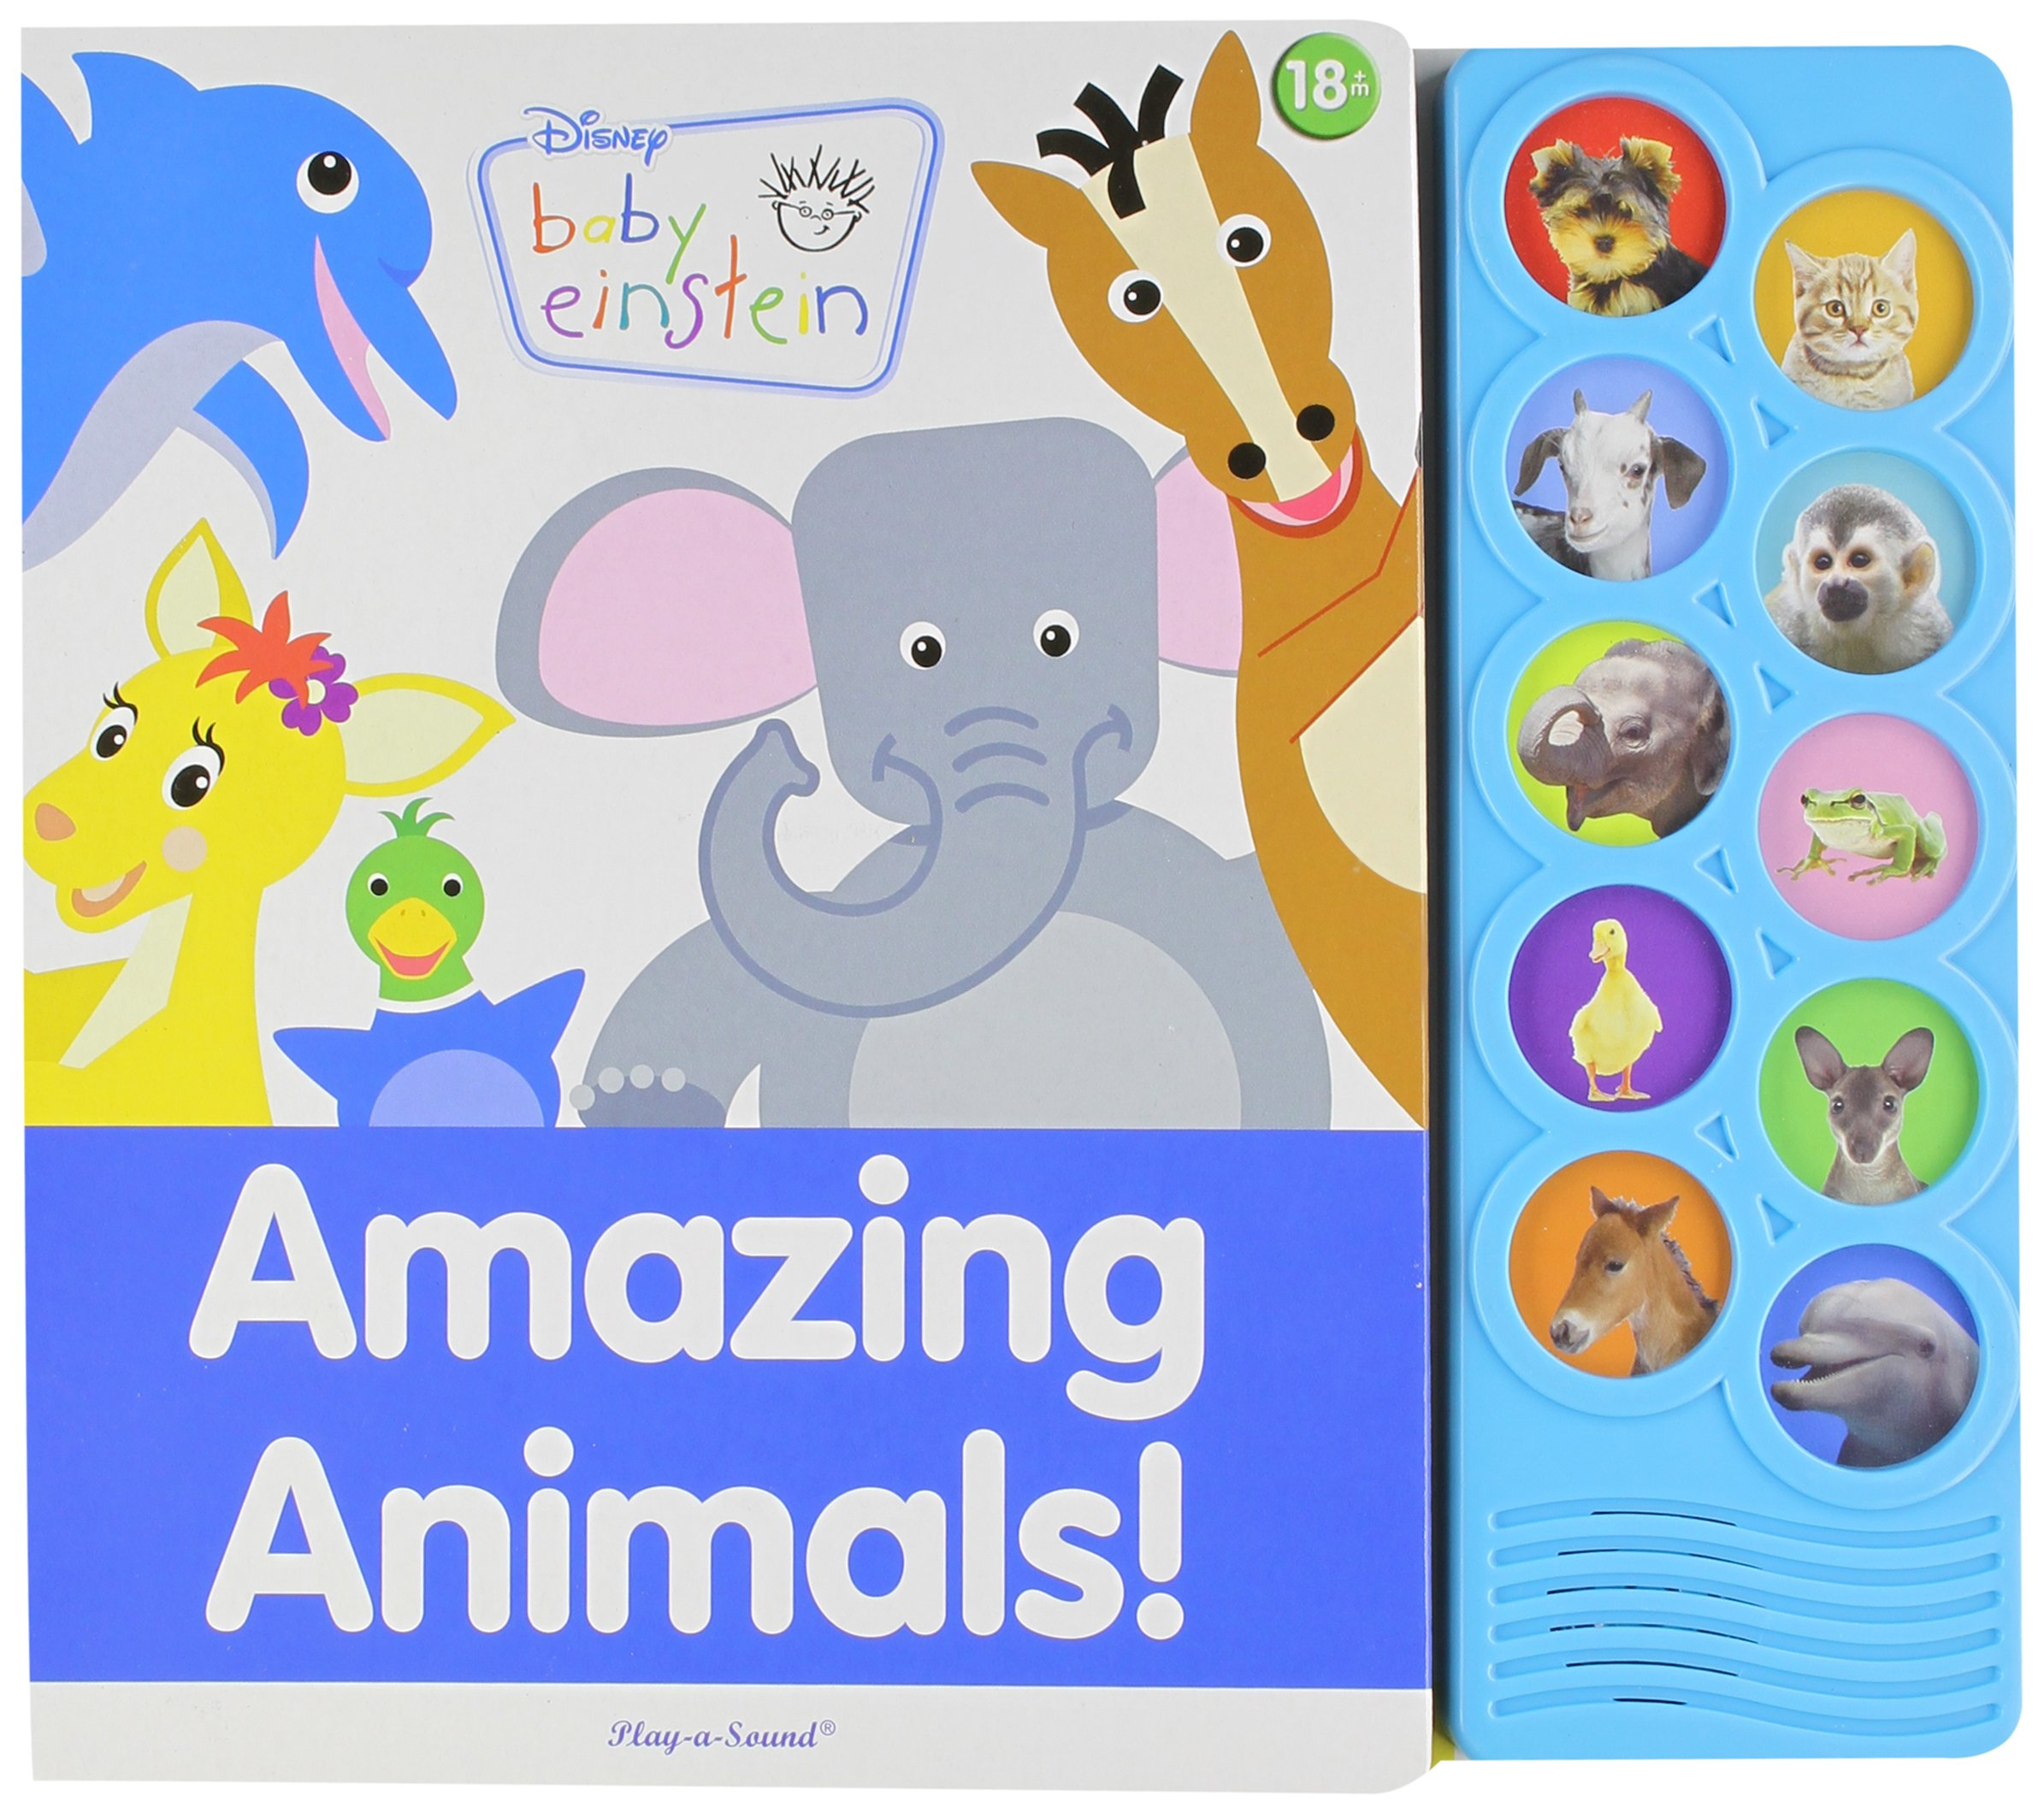 amazing animals play a sound disney baby einstein phoenix intl